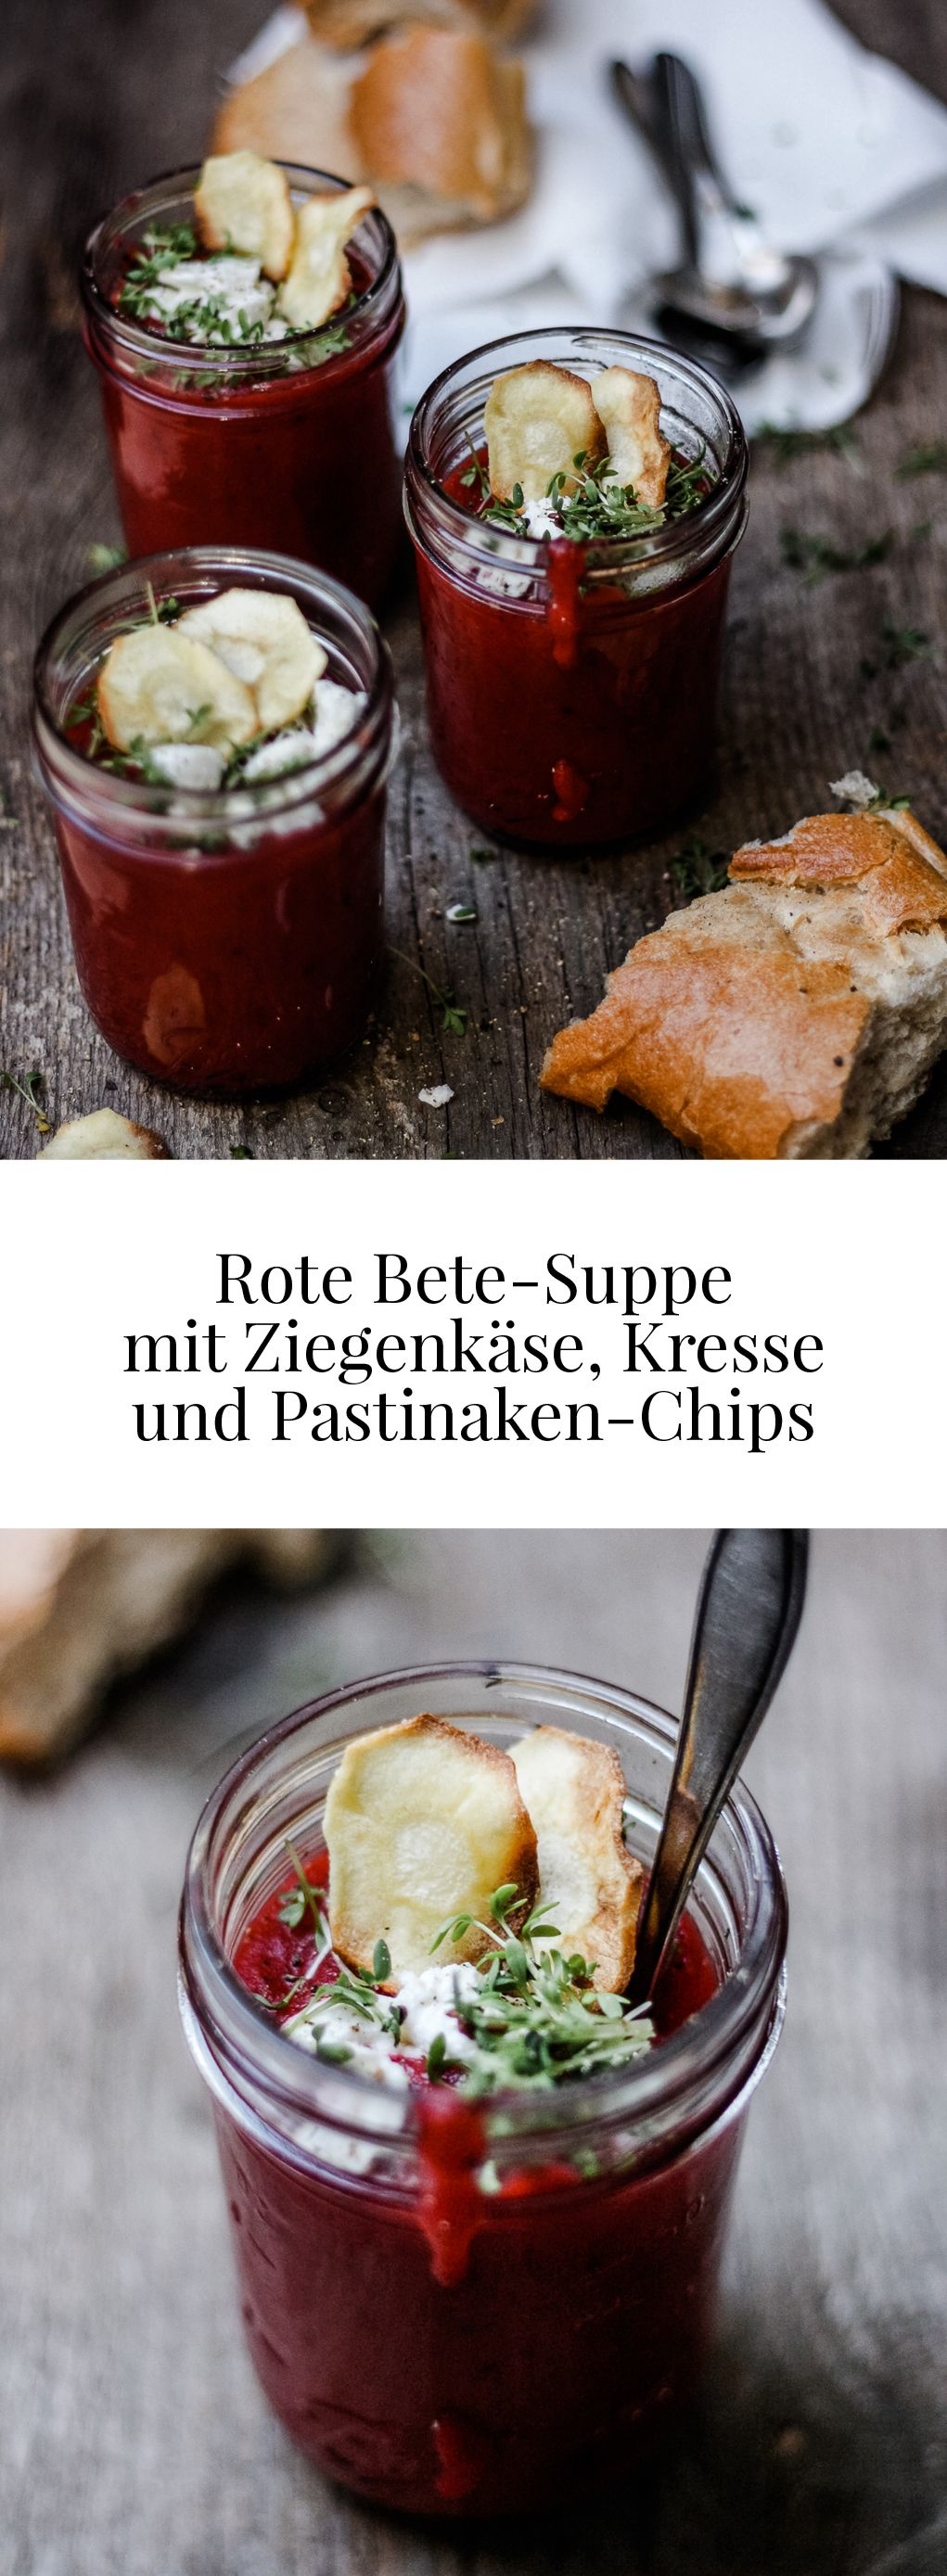 rote bete suppe mit ziegenk se kresse und pastinaken chips blogger rezepte die besten. Black Bedroom Furniture Sets. Home Design Ideas